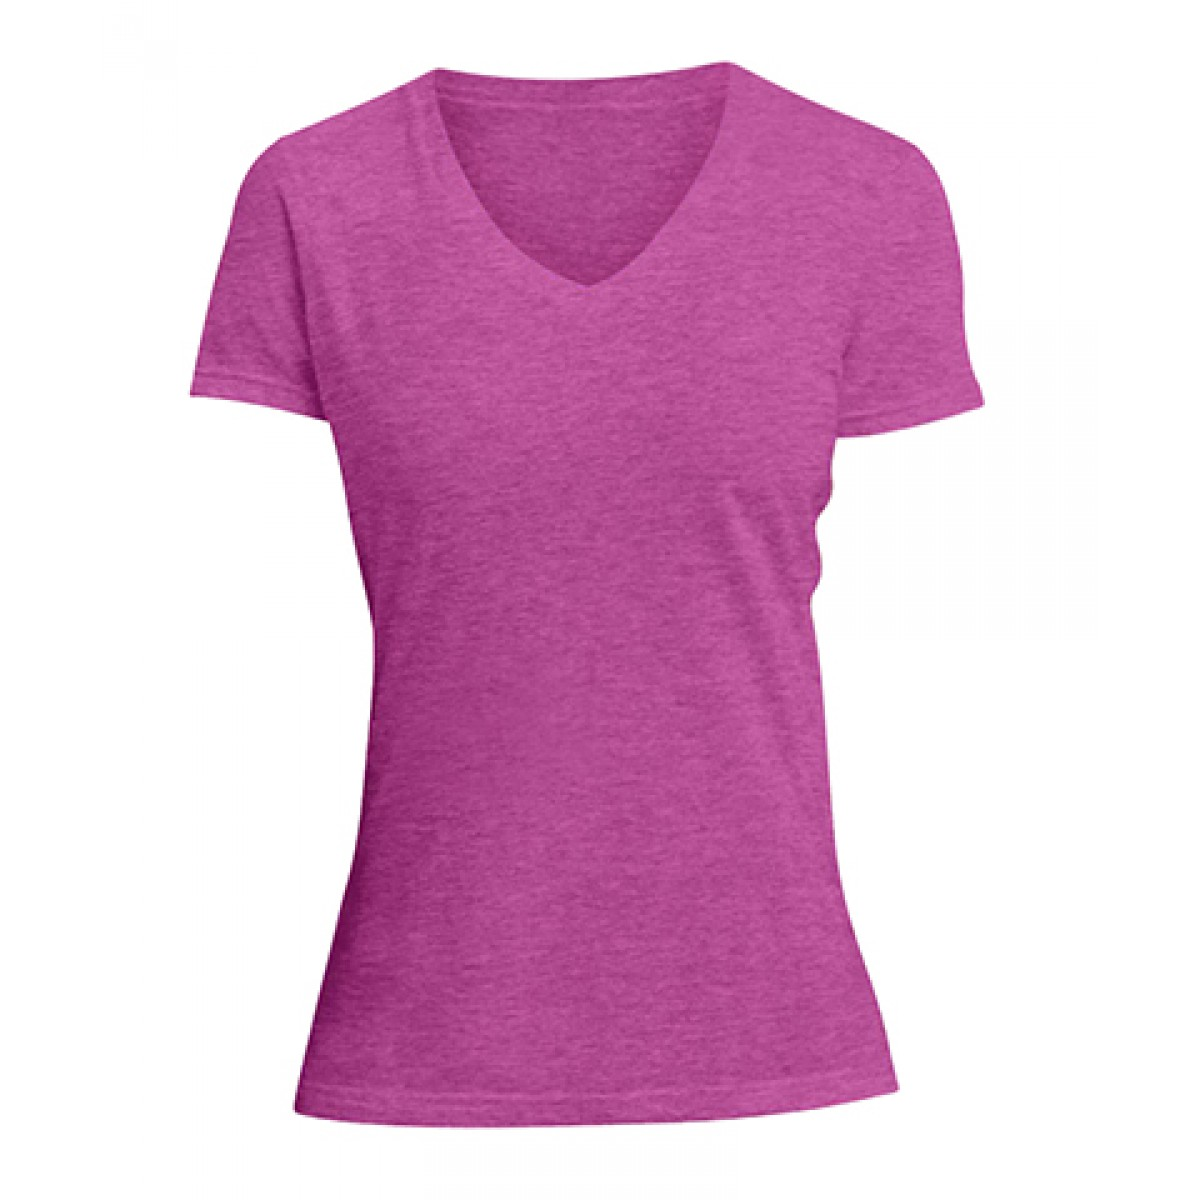 Ladies V-Neck Tee-Heathered Fuscia-XL